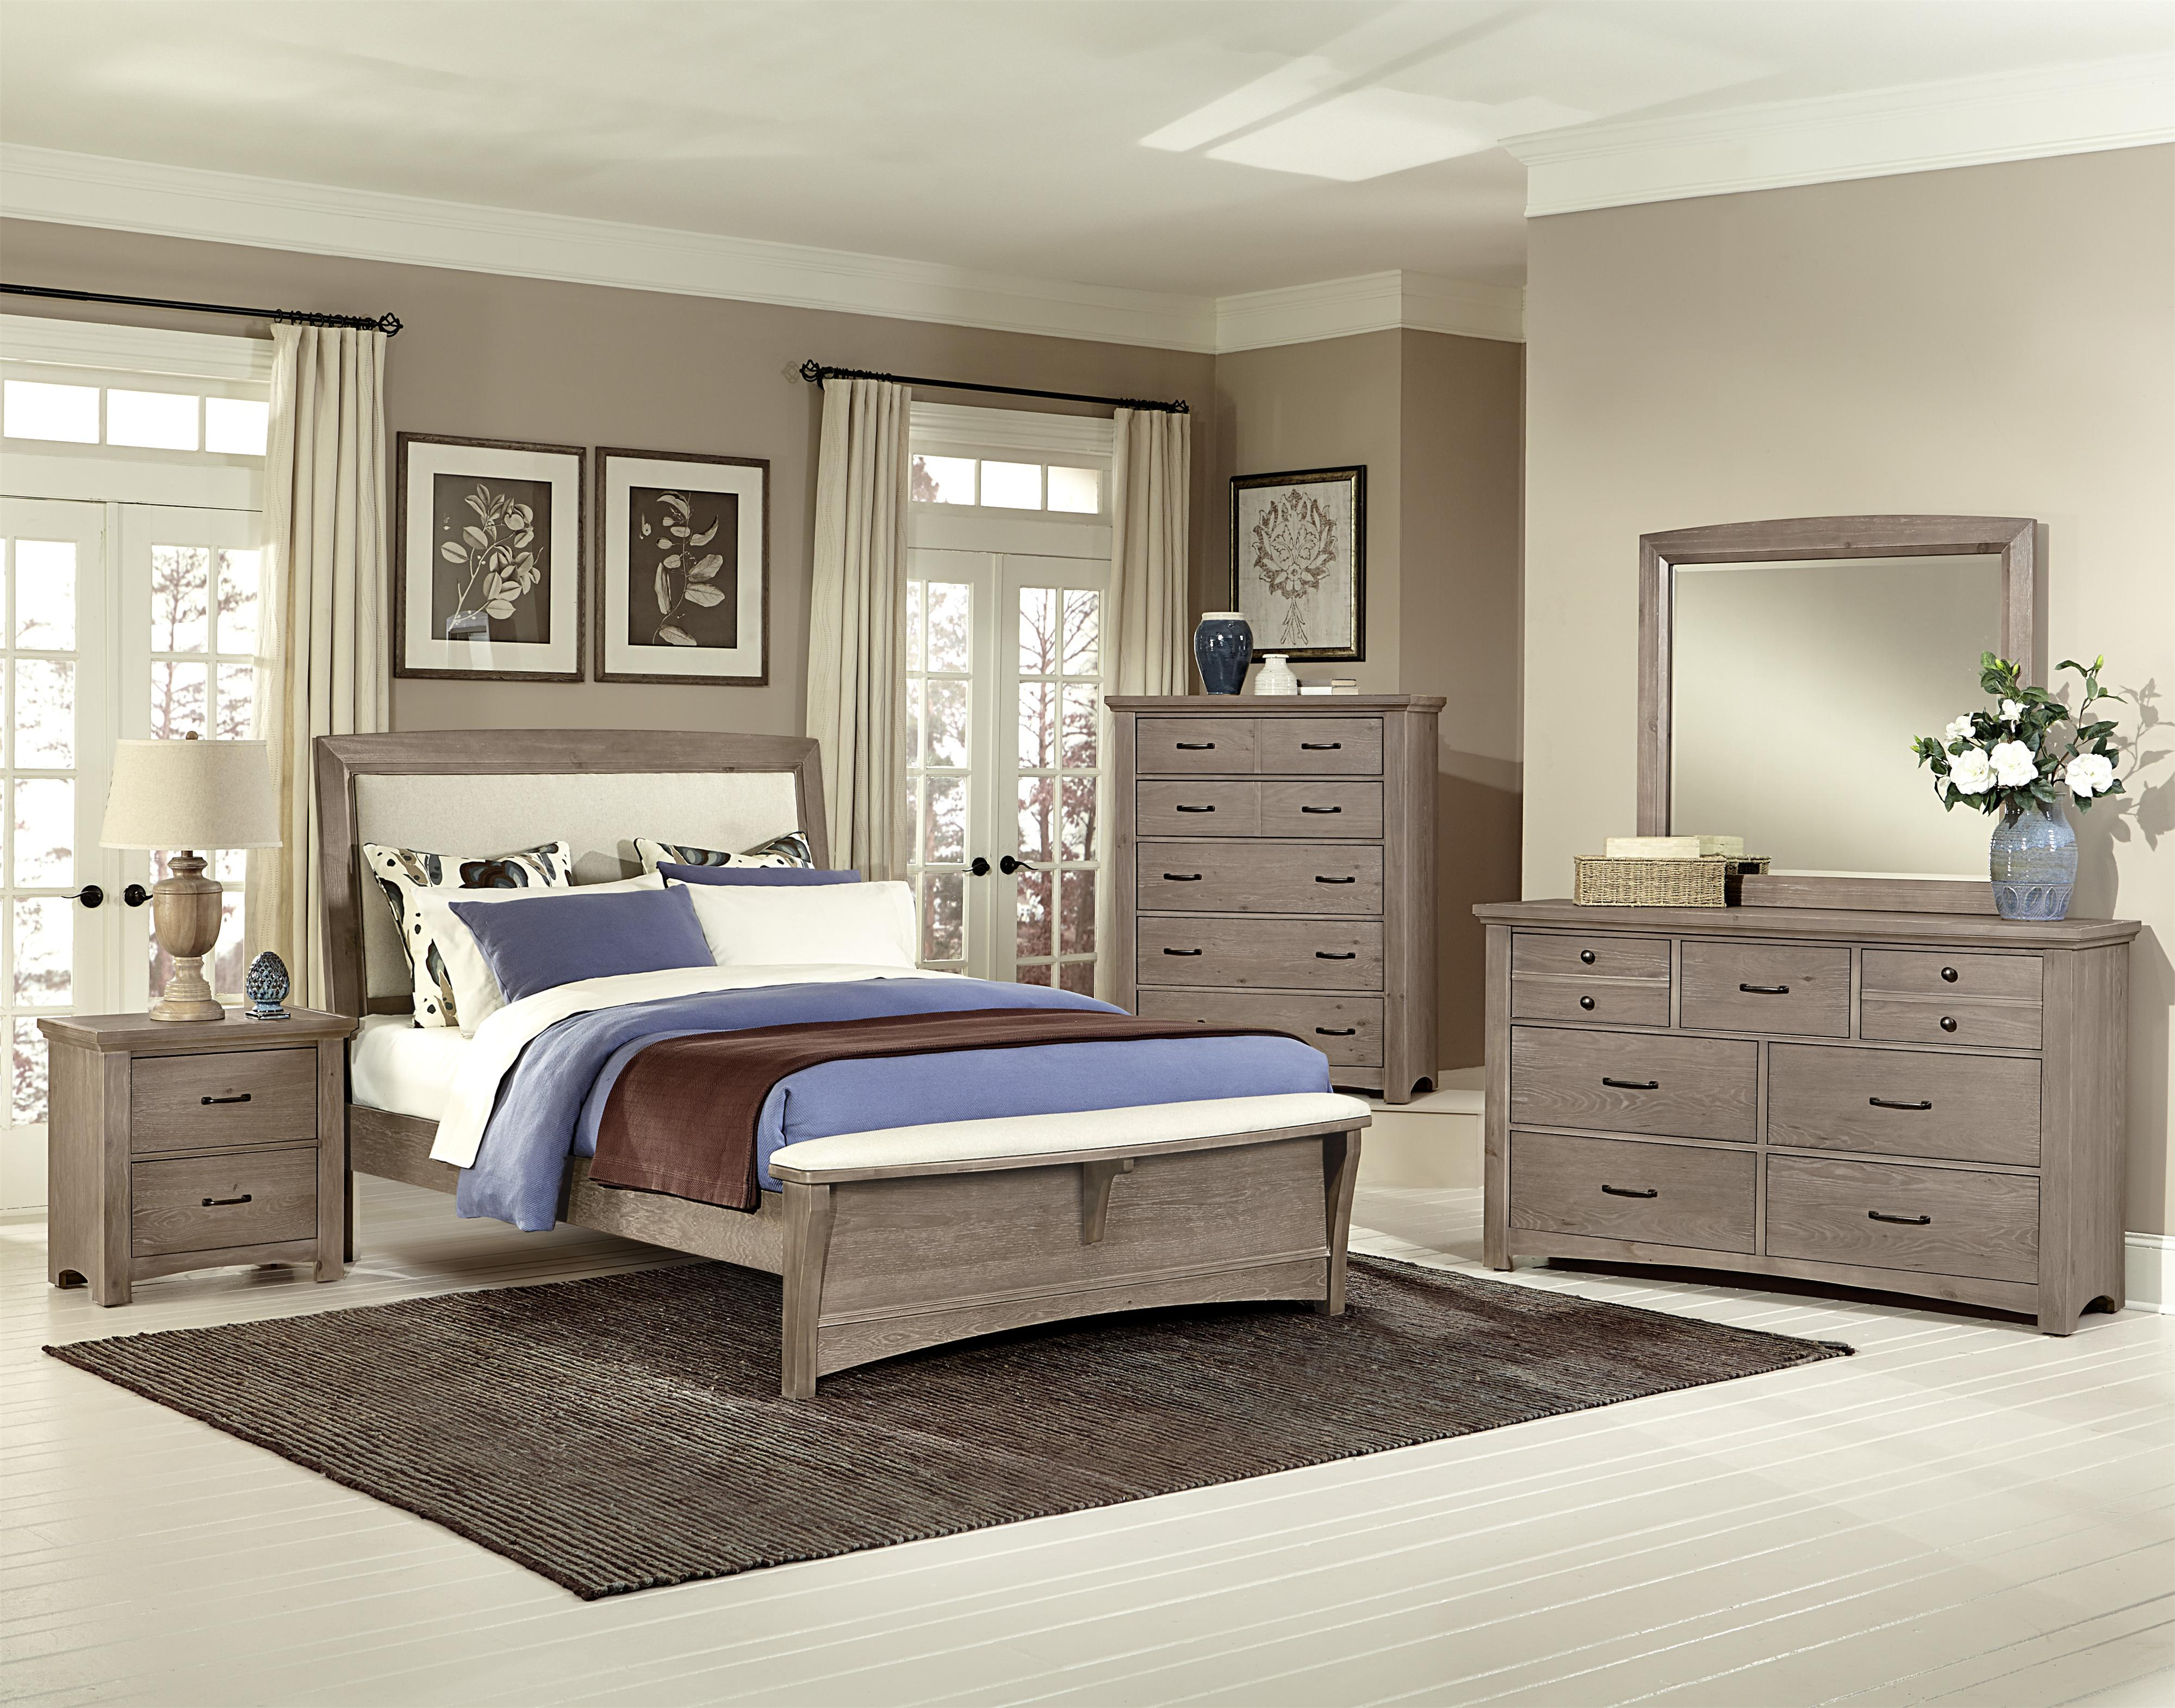 Vaughan Bassett Transitions King Bedroom Group - Item Number: BB61 K Bedroom Group 4